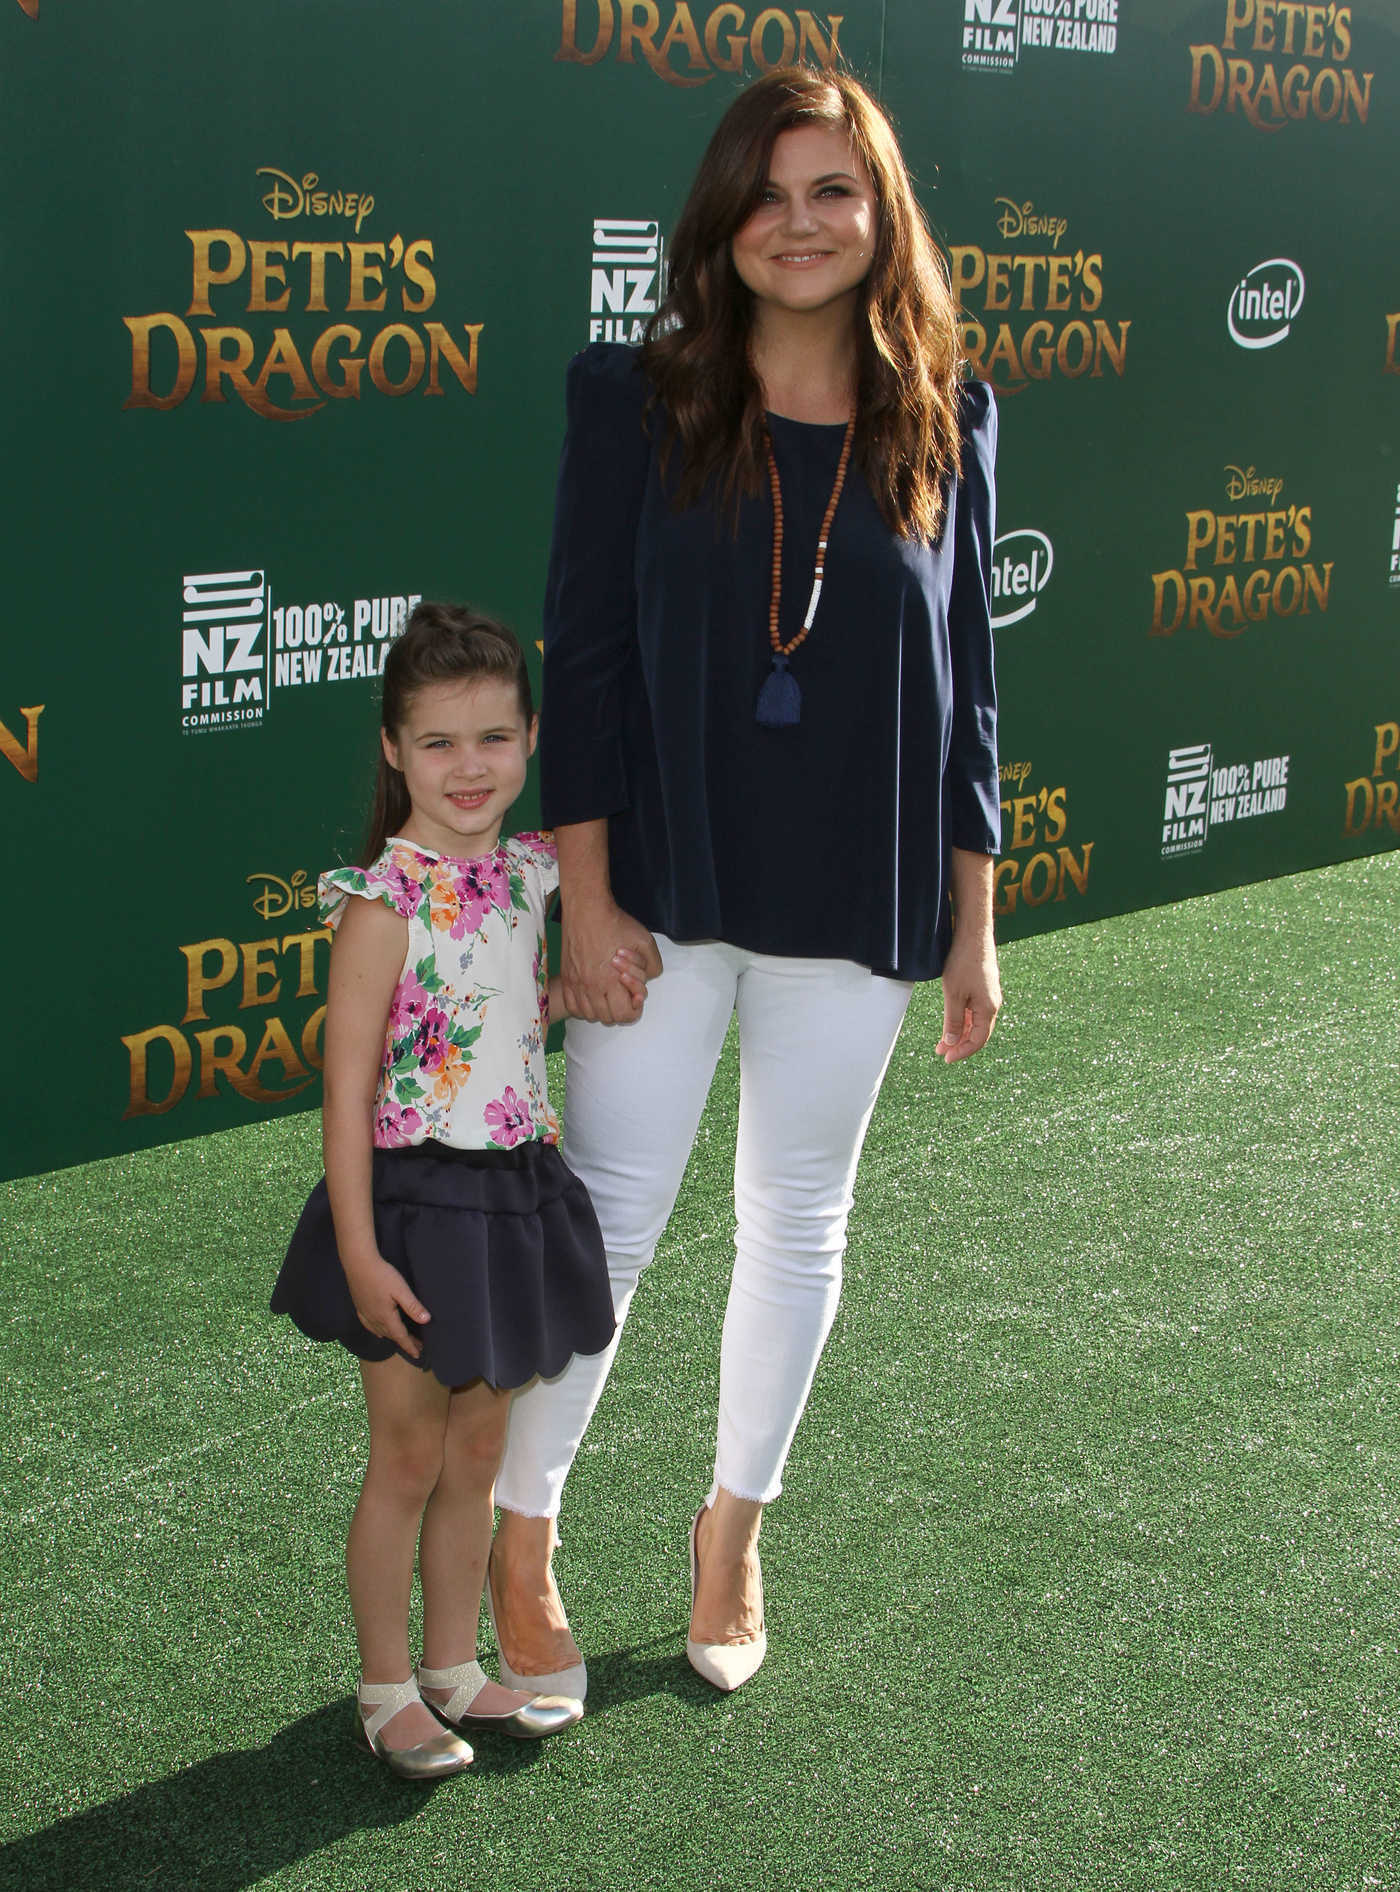 Tiffani Thiessen at the Pete's Dragon Premiere in Los Angeles 08/08/2016